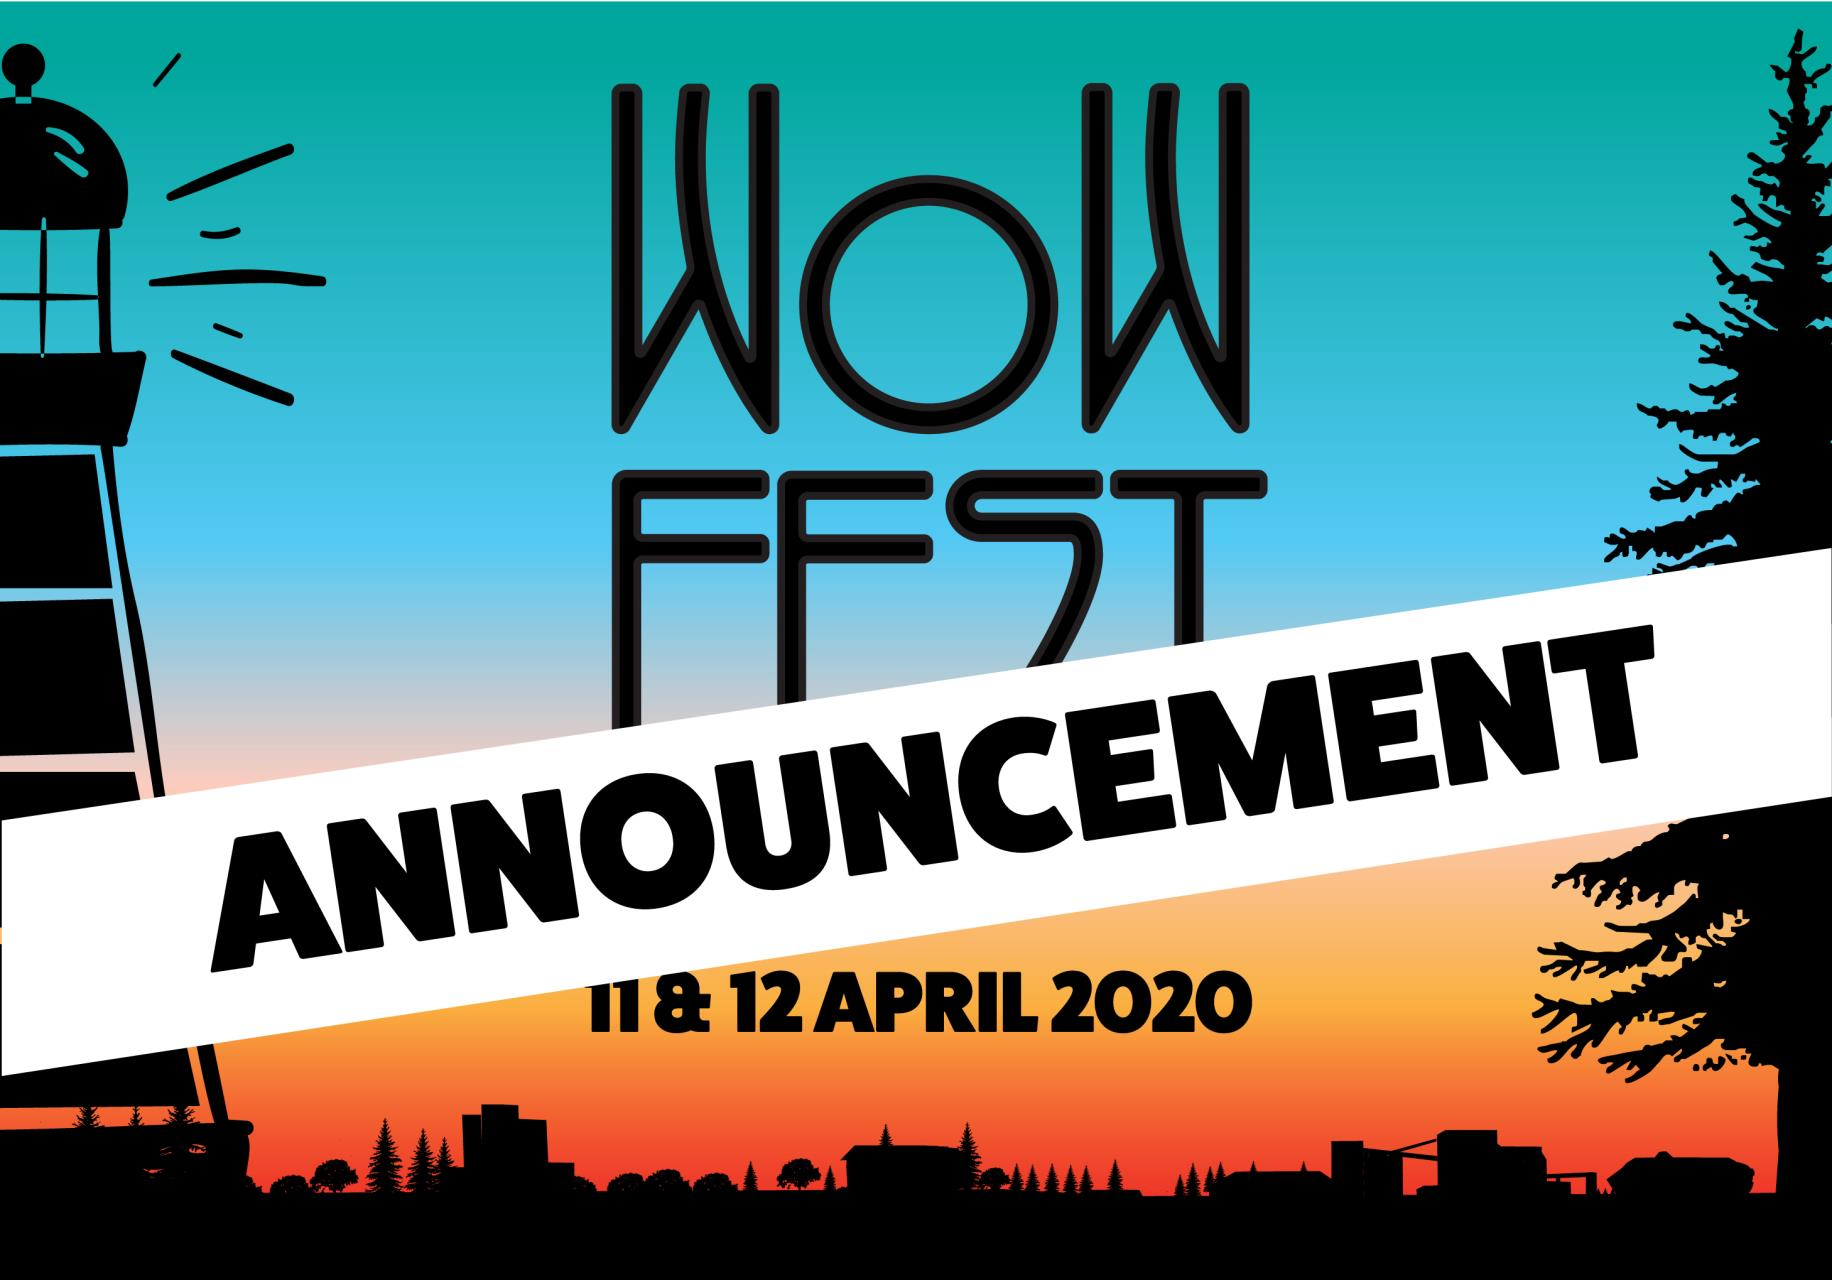 WoW Fest Announcement